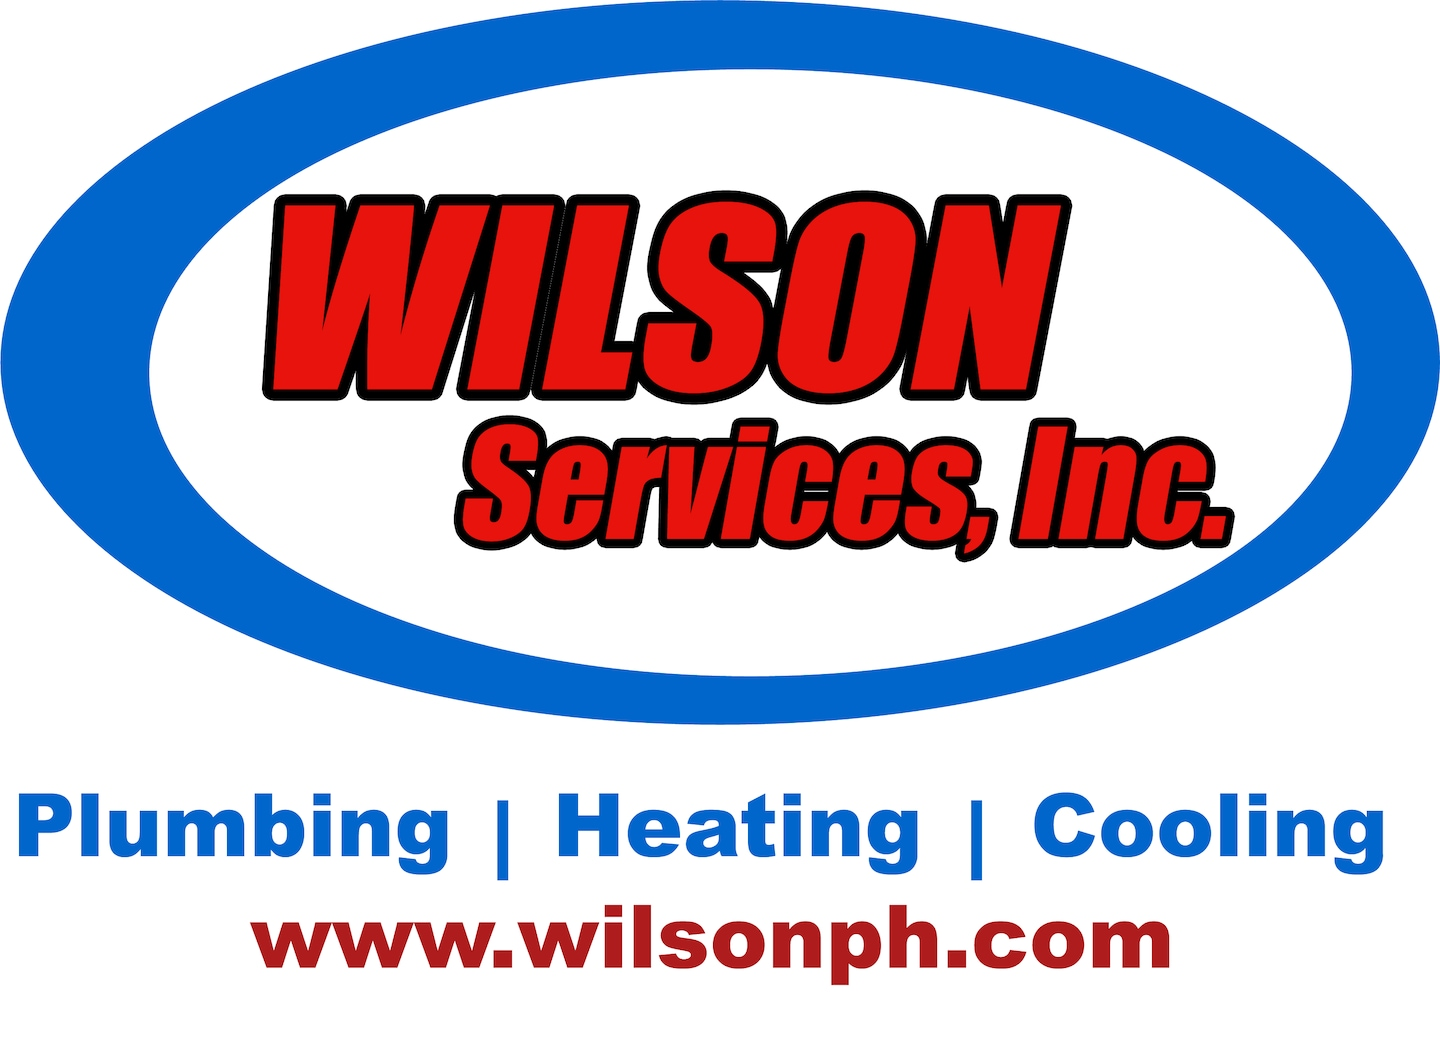 Wilson Services, Inc.